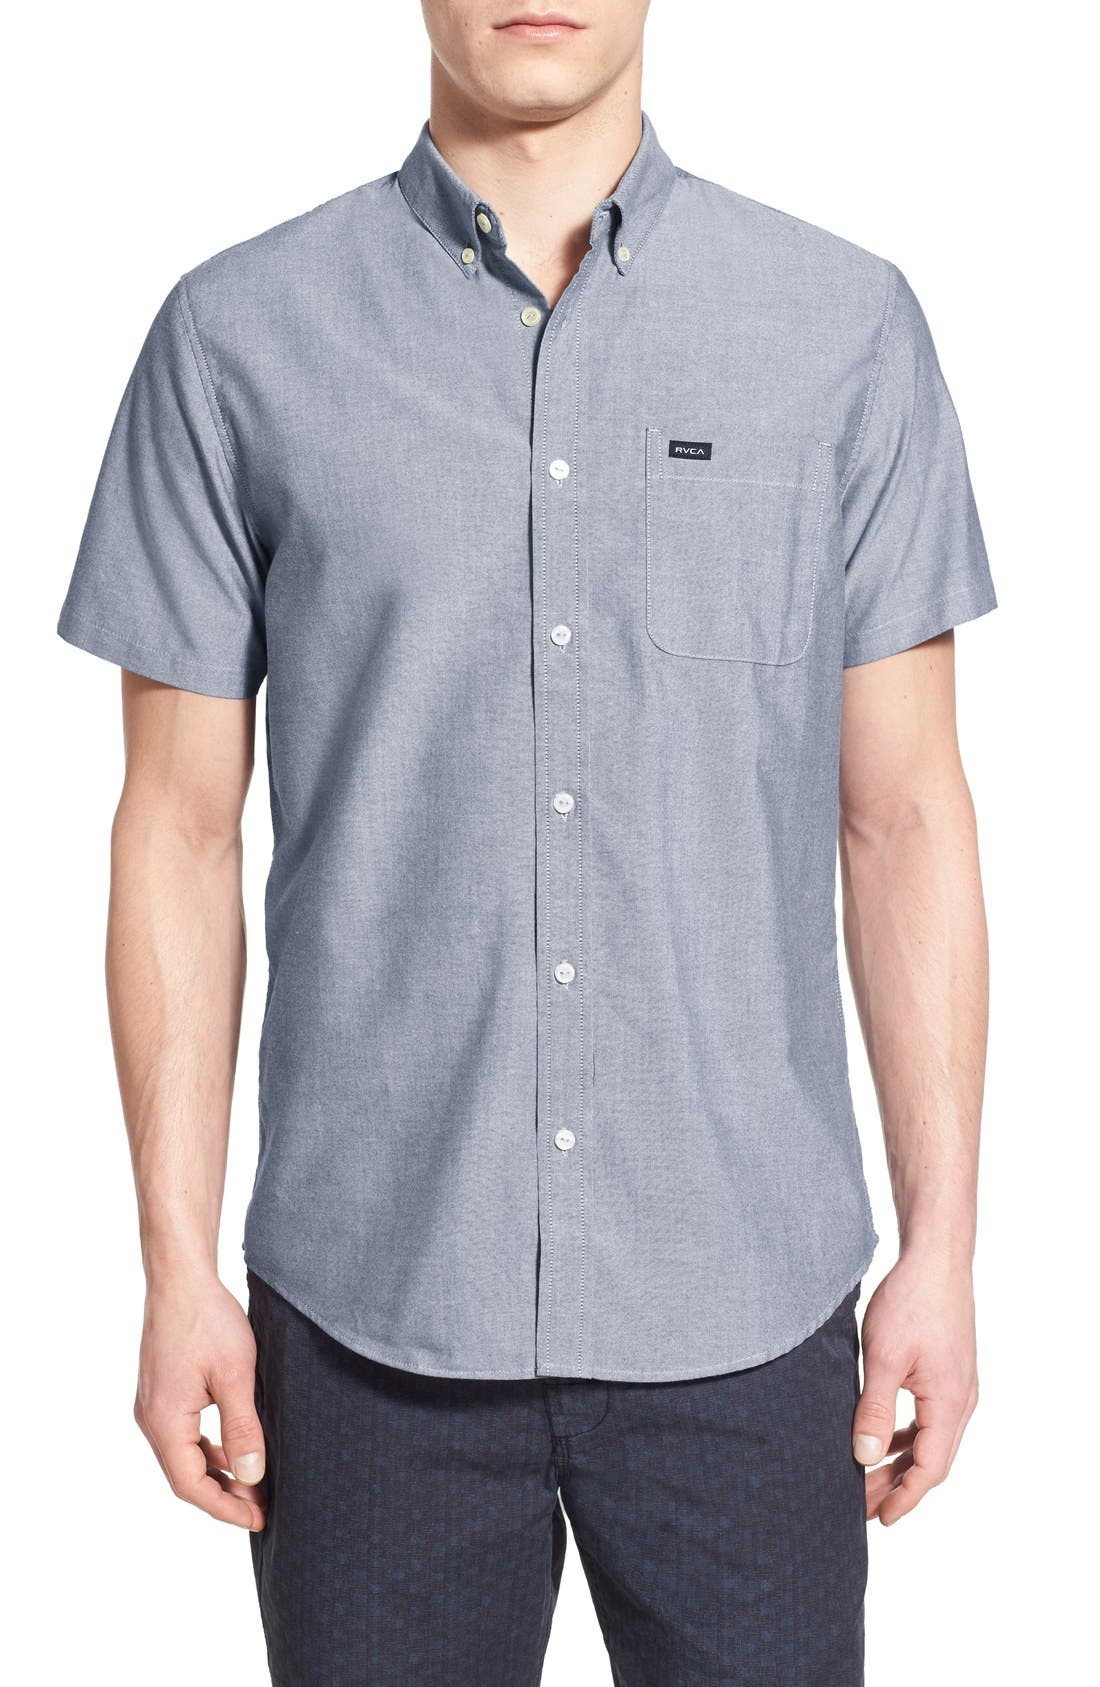 RVCA 'That'll Do' Slim Fit Short Sleeve Oxford Shirt